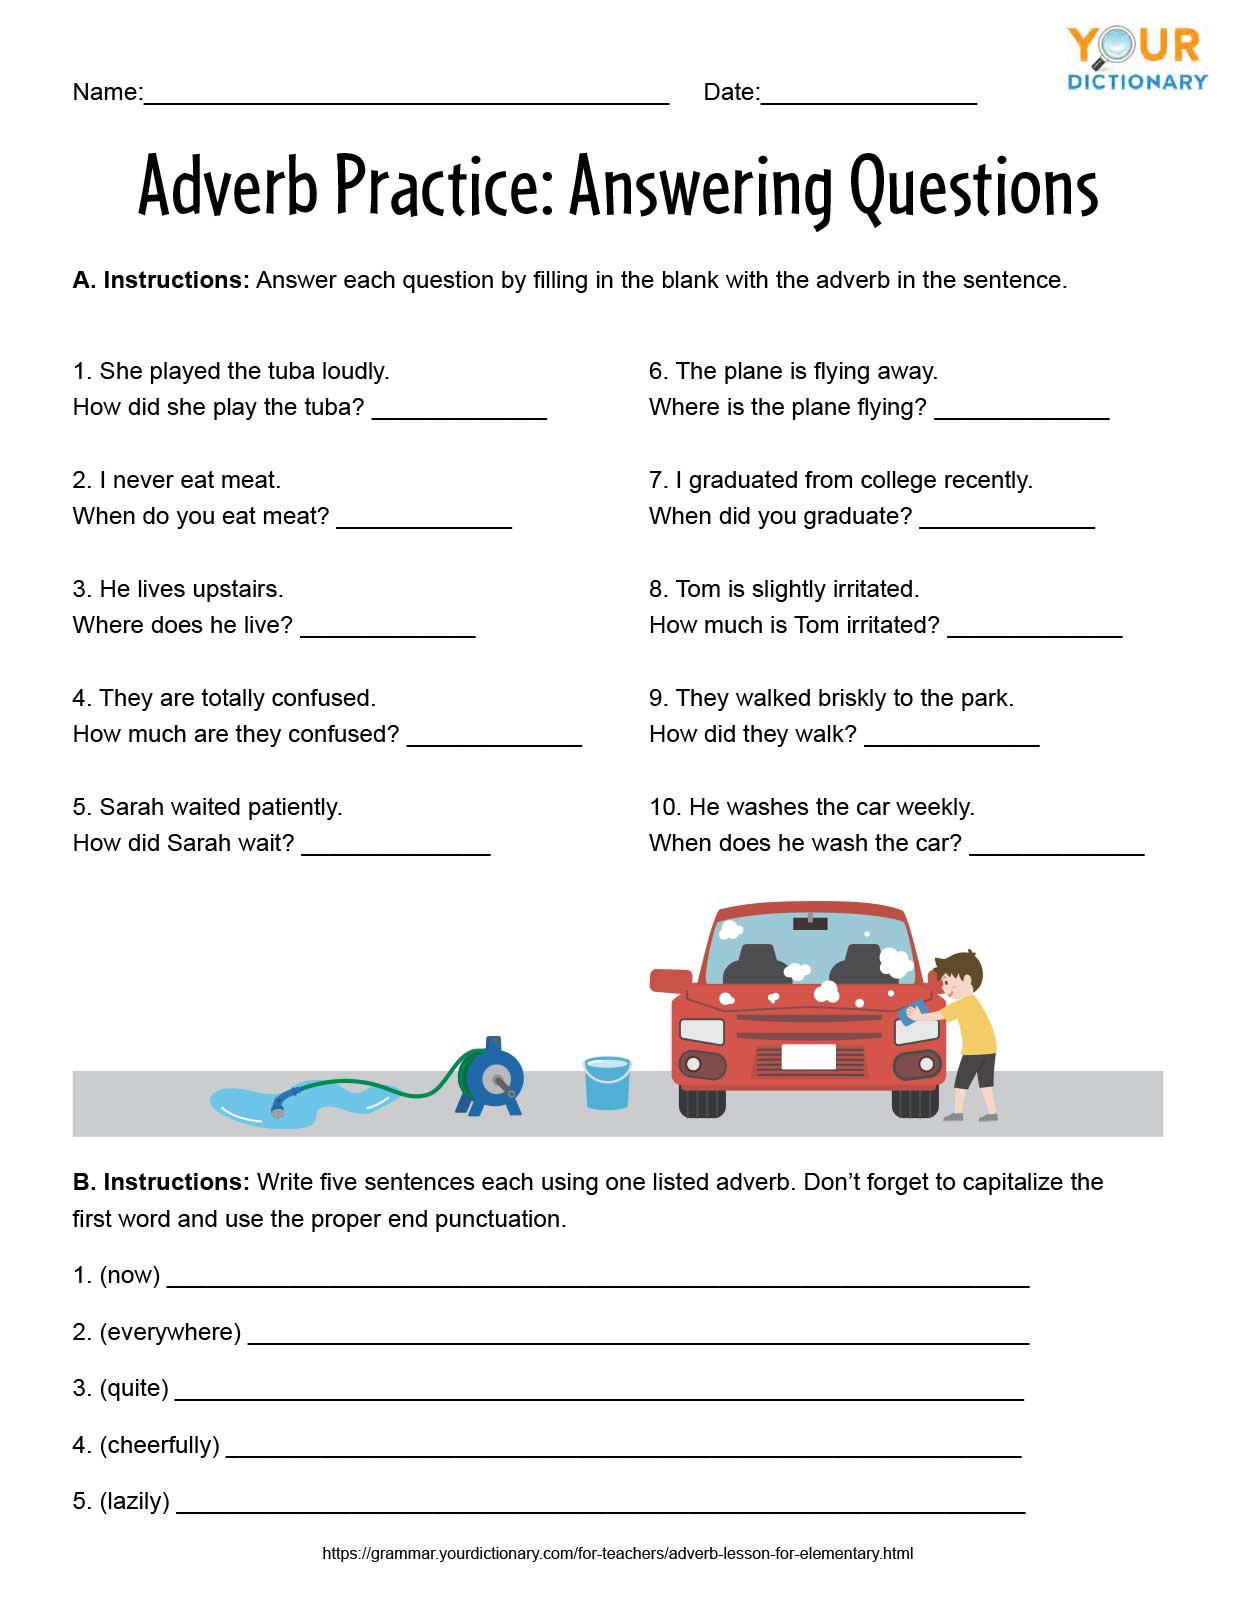 adverb practice worksheet answering questions